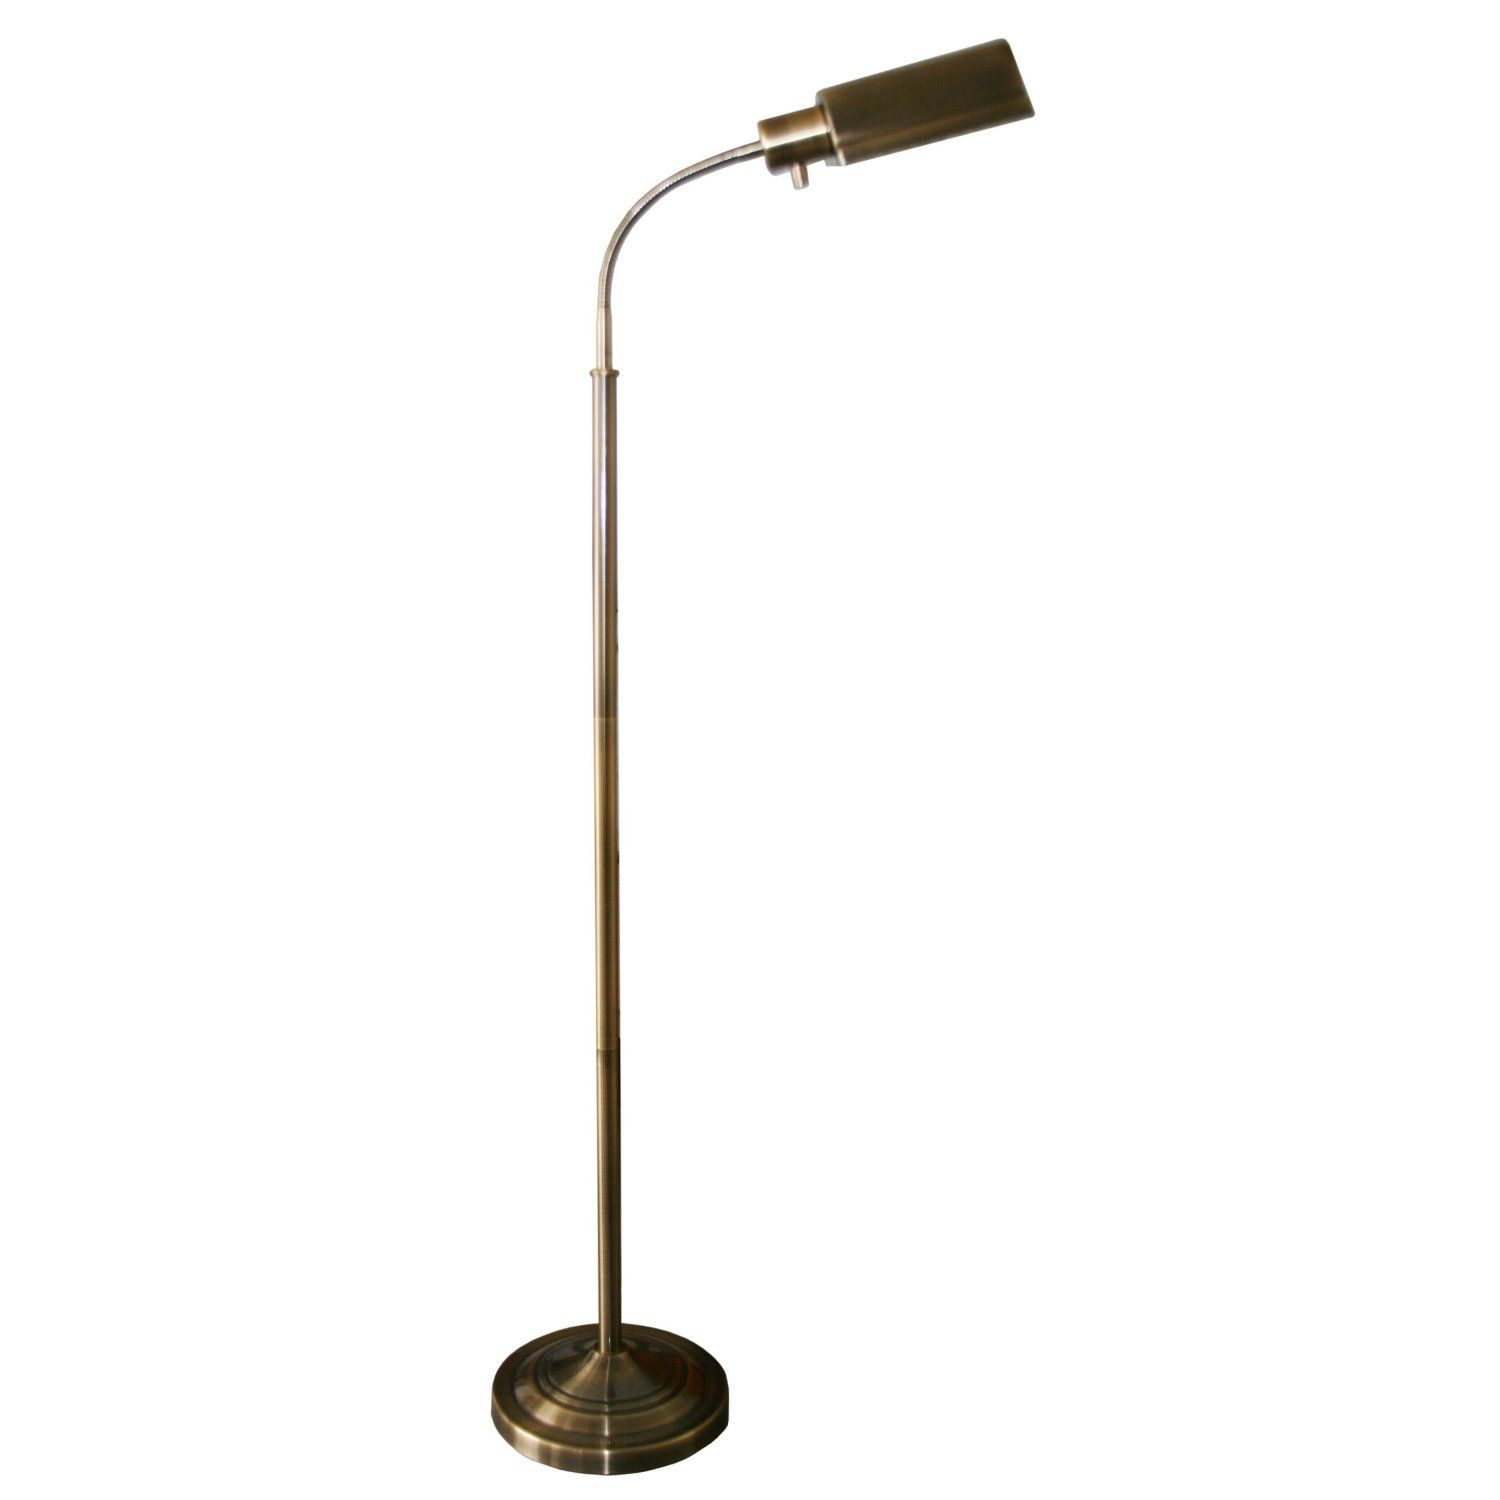 Daylight 24 402051 07 Natural Daylight Battery Operated Floor Lamp